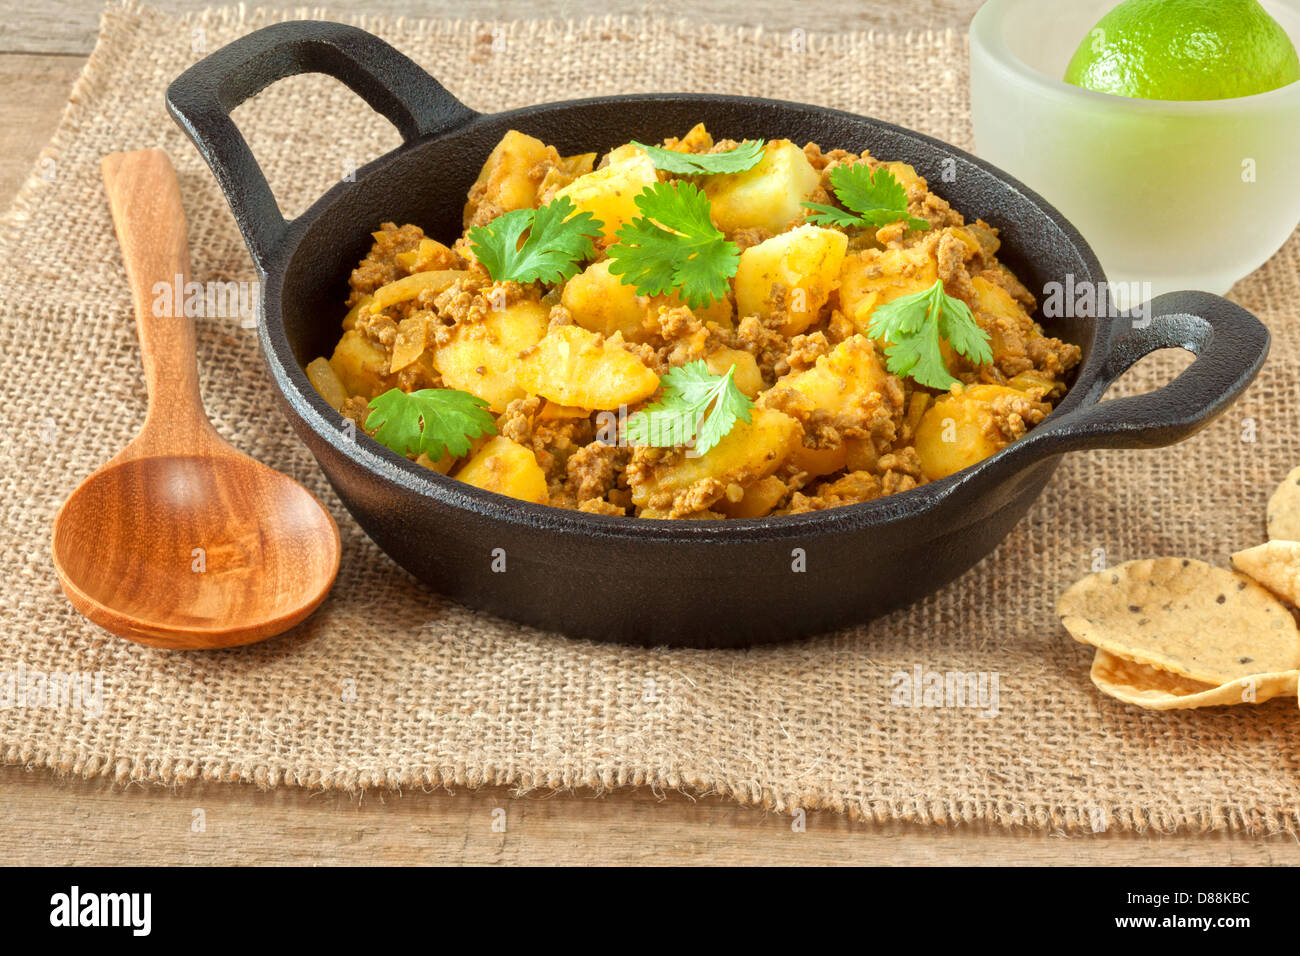 Beef and Potato Curry - a healthy low calorie meal of lean minced or ground beef in a curry with potatoes and coriander... - Stock Image